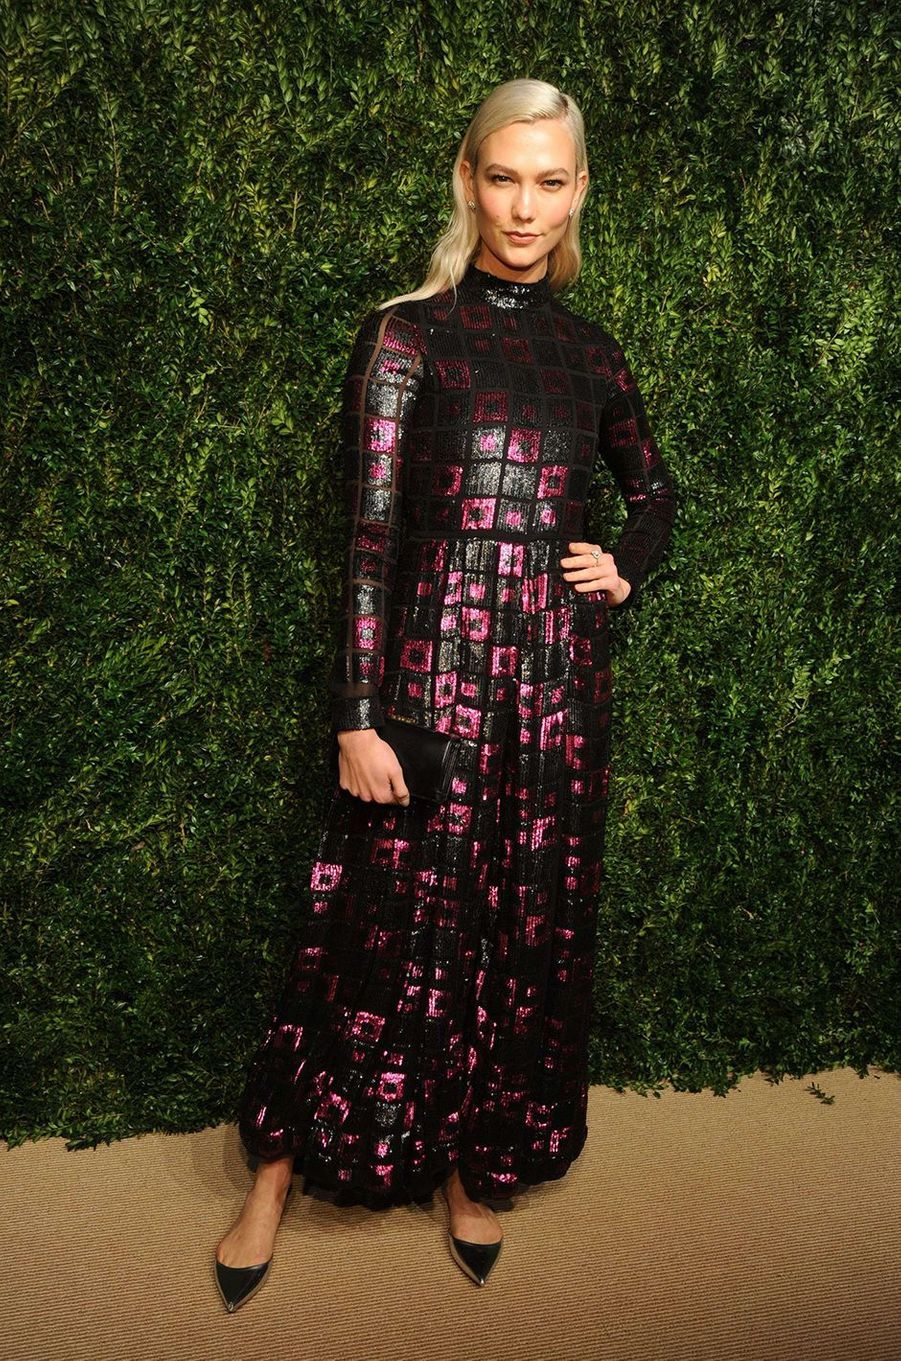 Karlie Kloss aux CFDA Fashion Awards, à New York, le 6 novembre 2017.